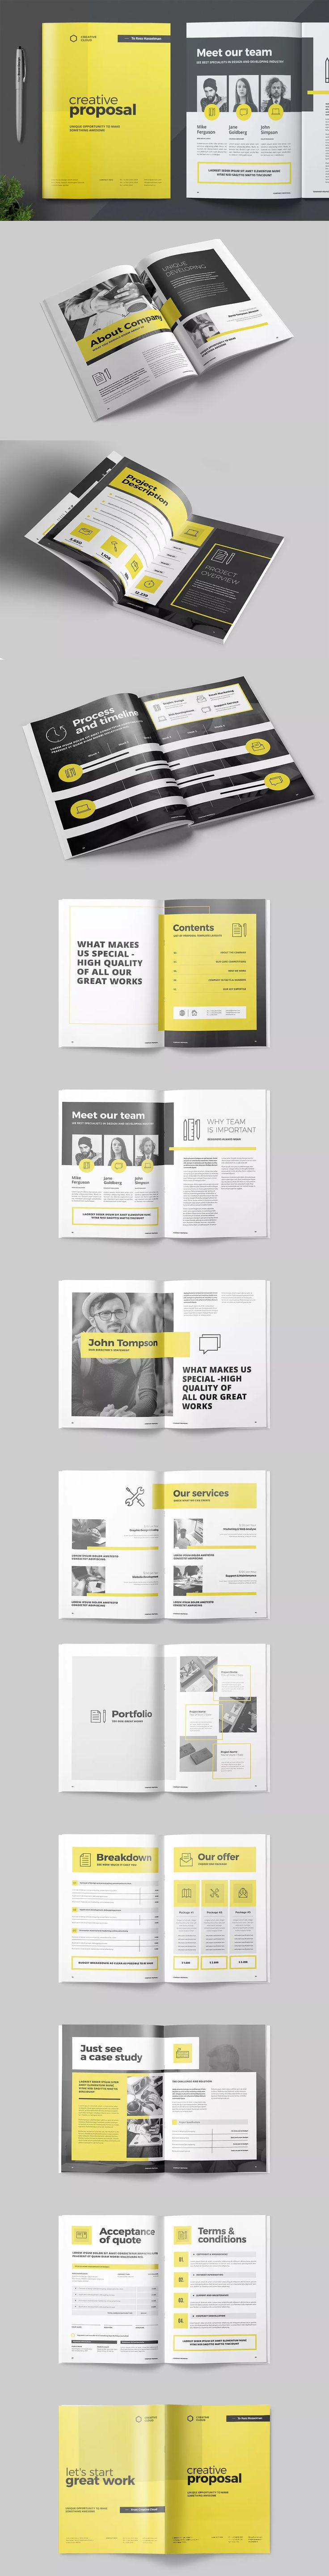 Proposal Template InDesign INDD A4 and